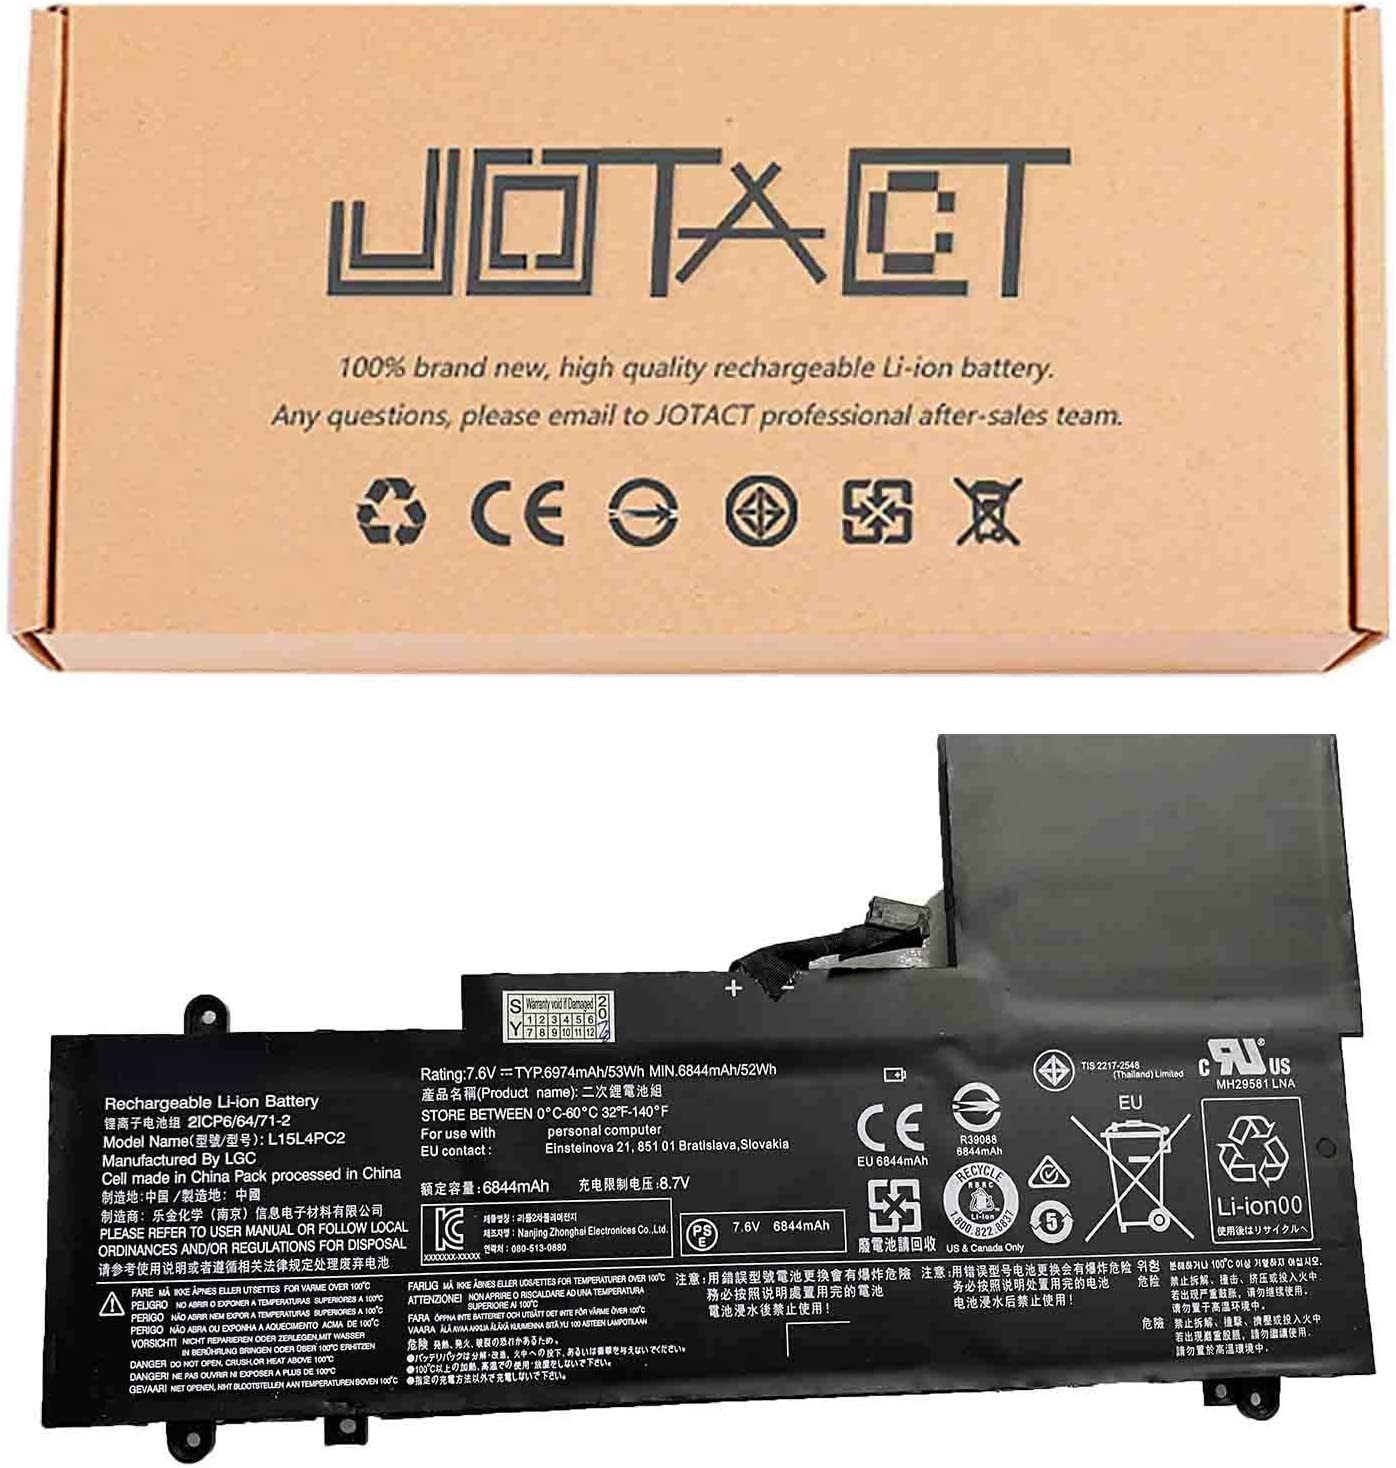 JOTACT L15L4PC2 (7.6V 53W/6974mAh 4-Cell) Laptop Battery Compatible with Lenovo Yoga 710-14IKB 710-14ISK 710-15IKB 710-15ISK Series Notebook 5B10K90802 L15M4PC2 5B10K90778